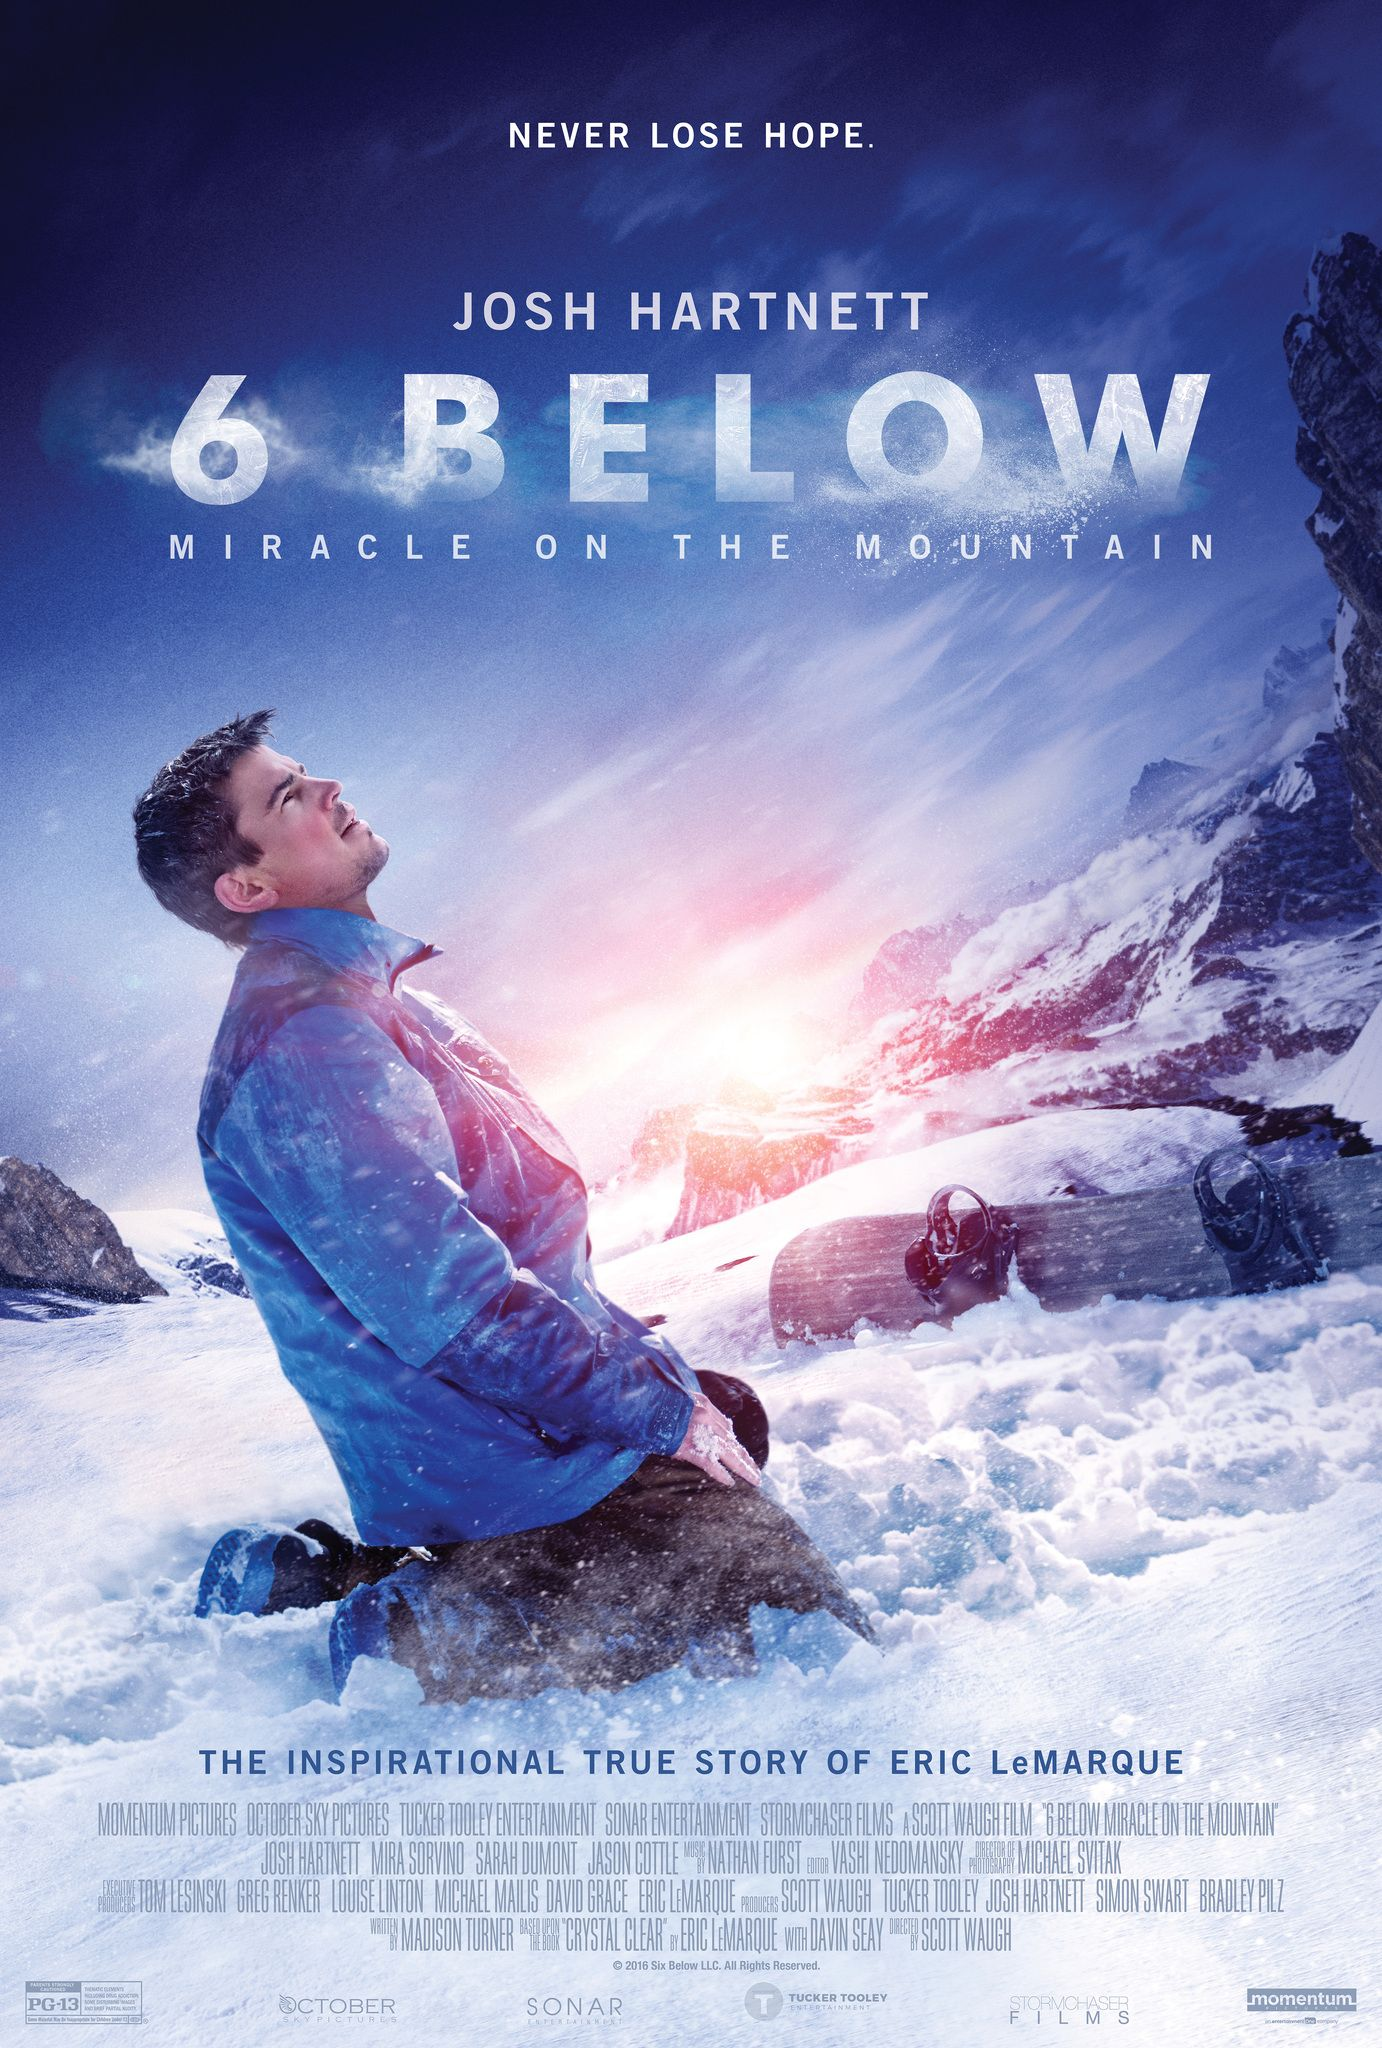 Watch Movie 6 Below Miracle On The Mountain Full Hd